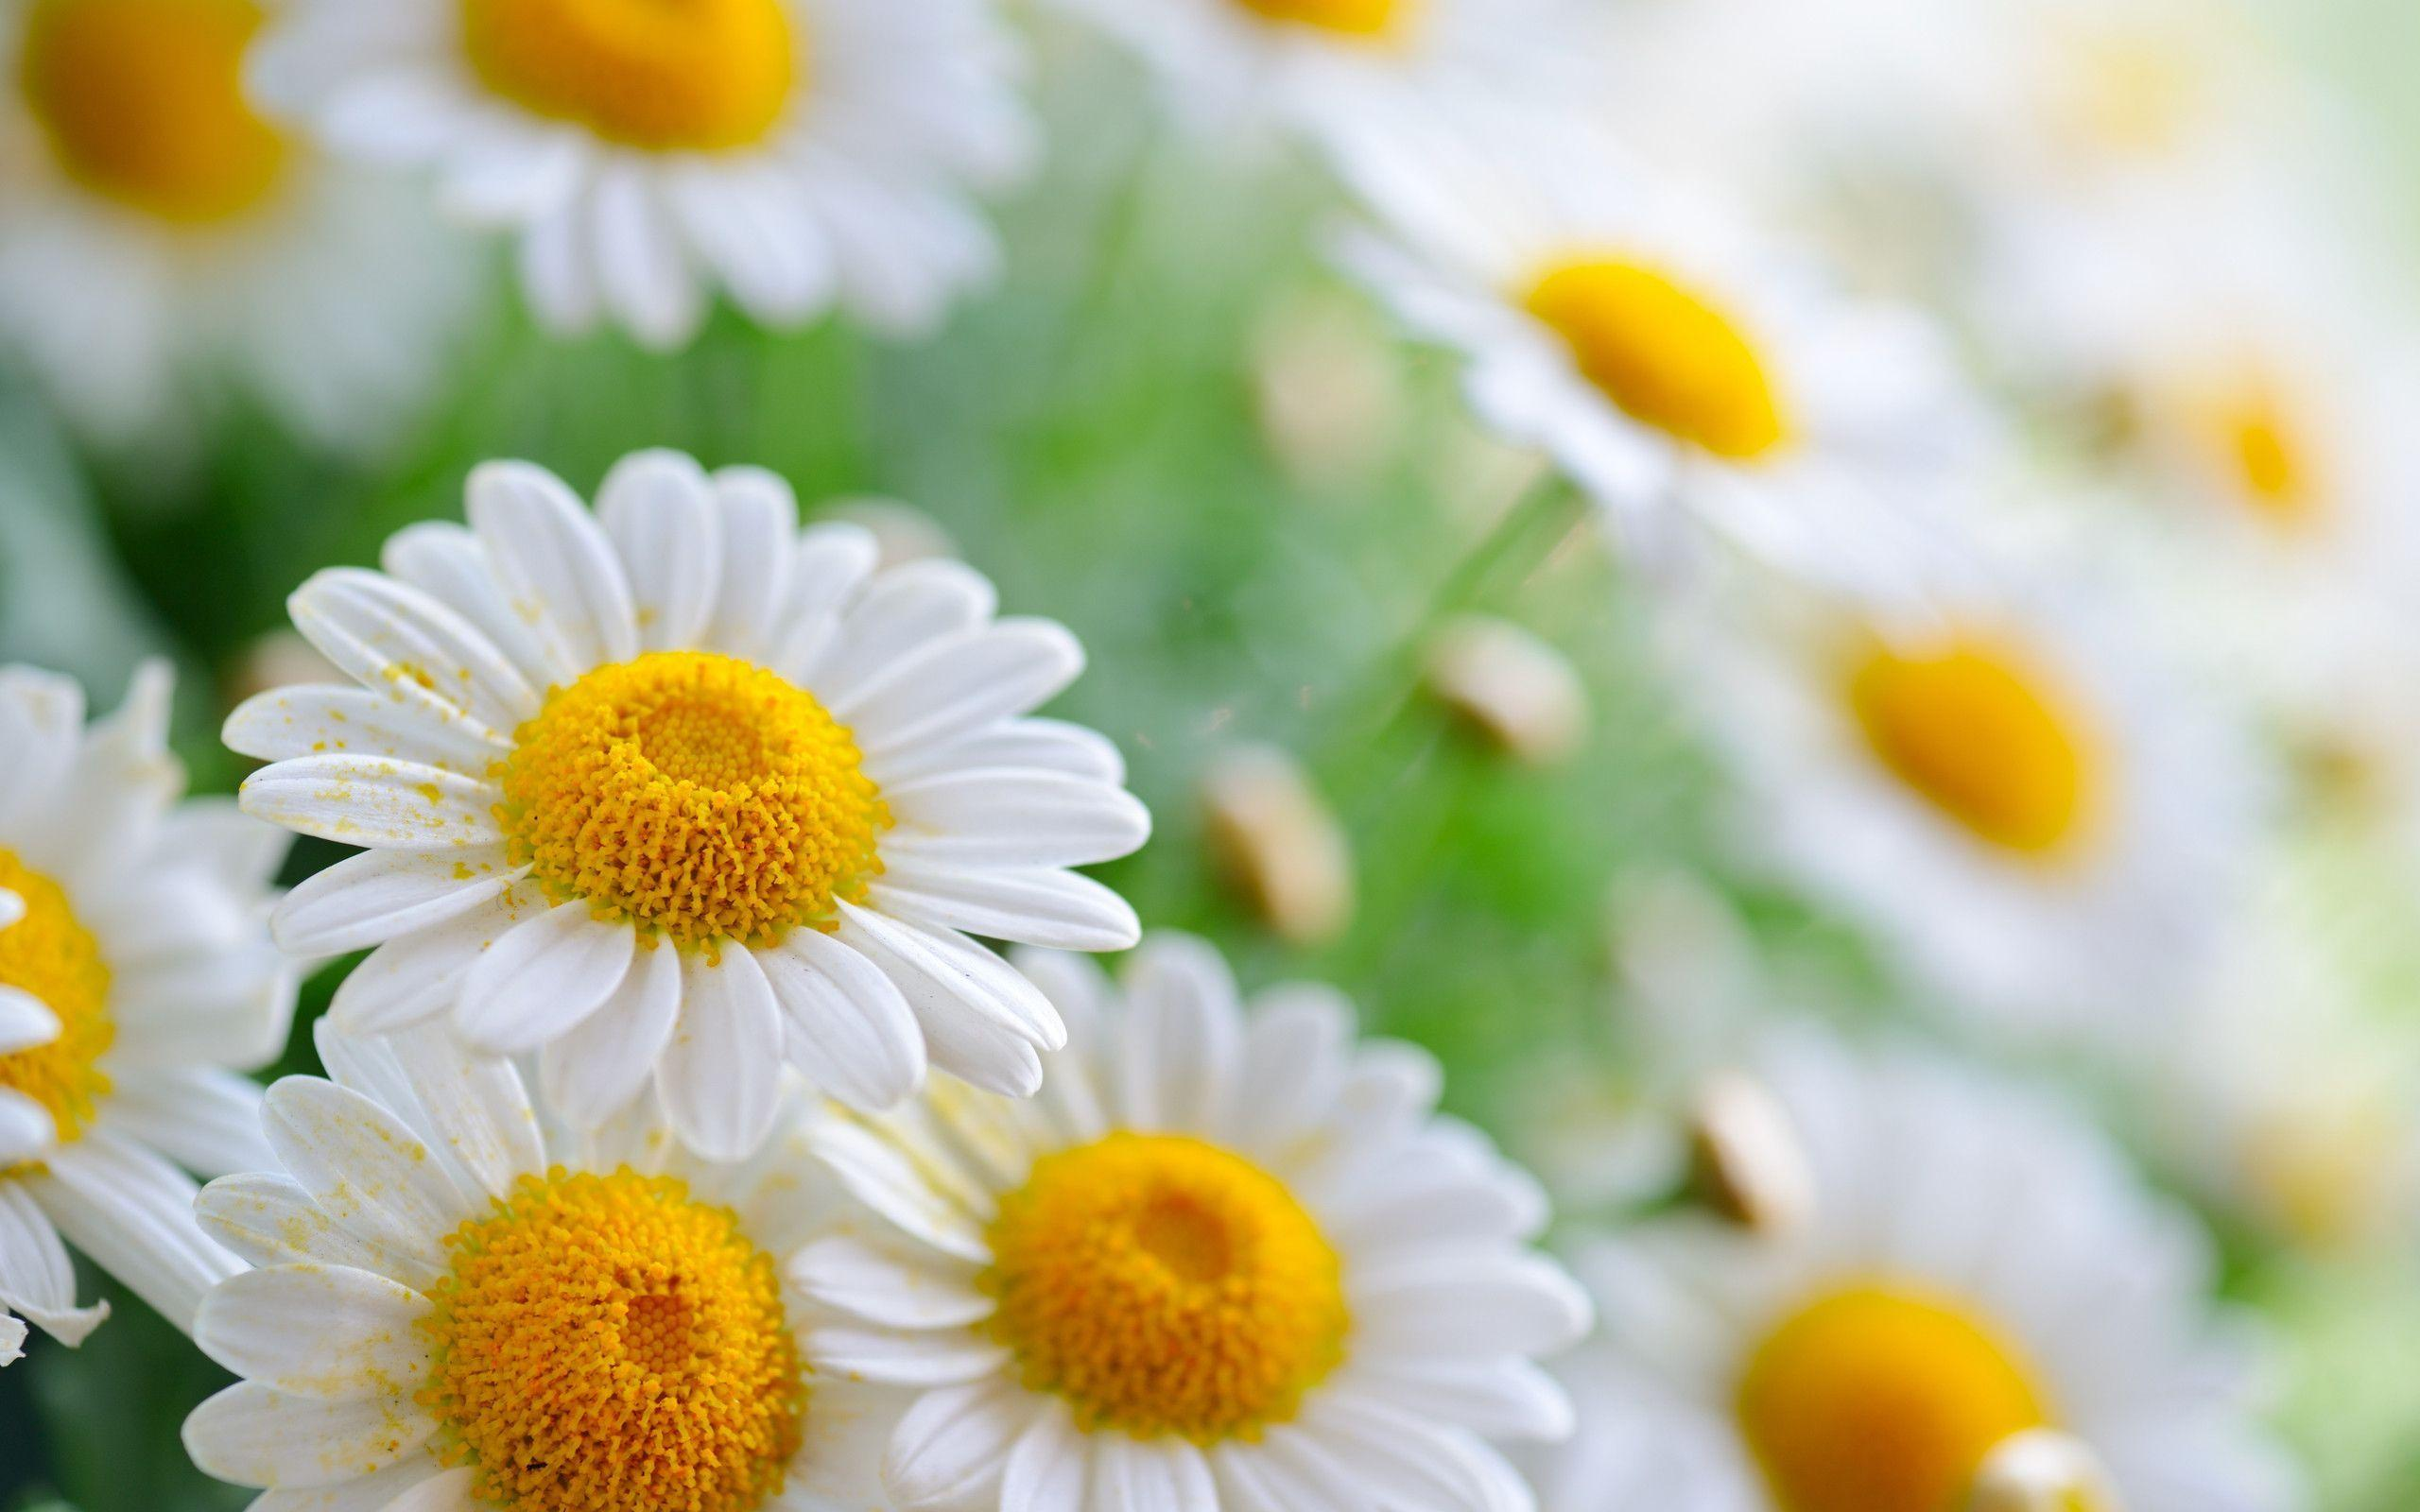 Daisy flower wallpapers wallpaper cave pollen on daisy flower wallpapers 2560x1600 1341177 mightylinksfo